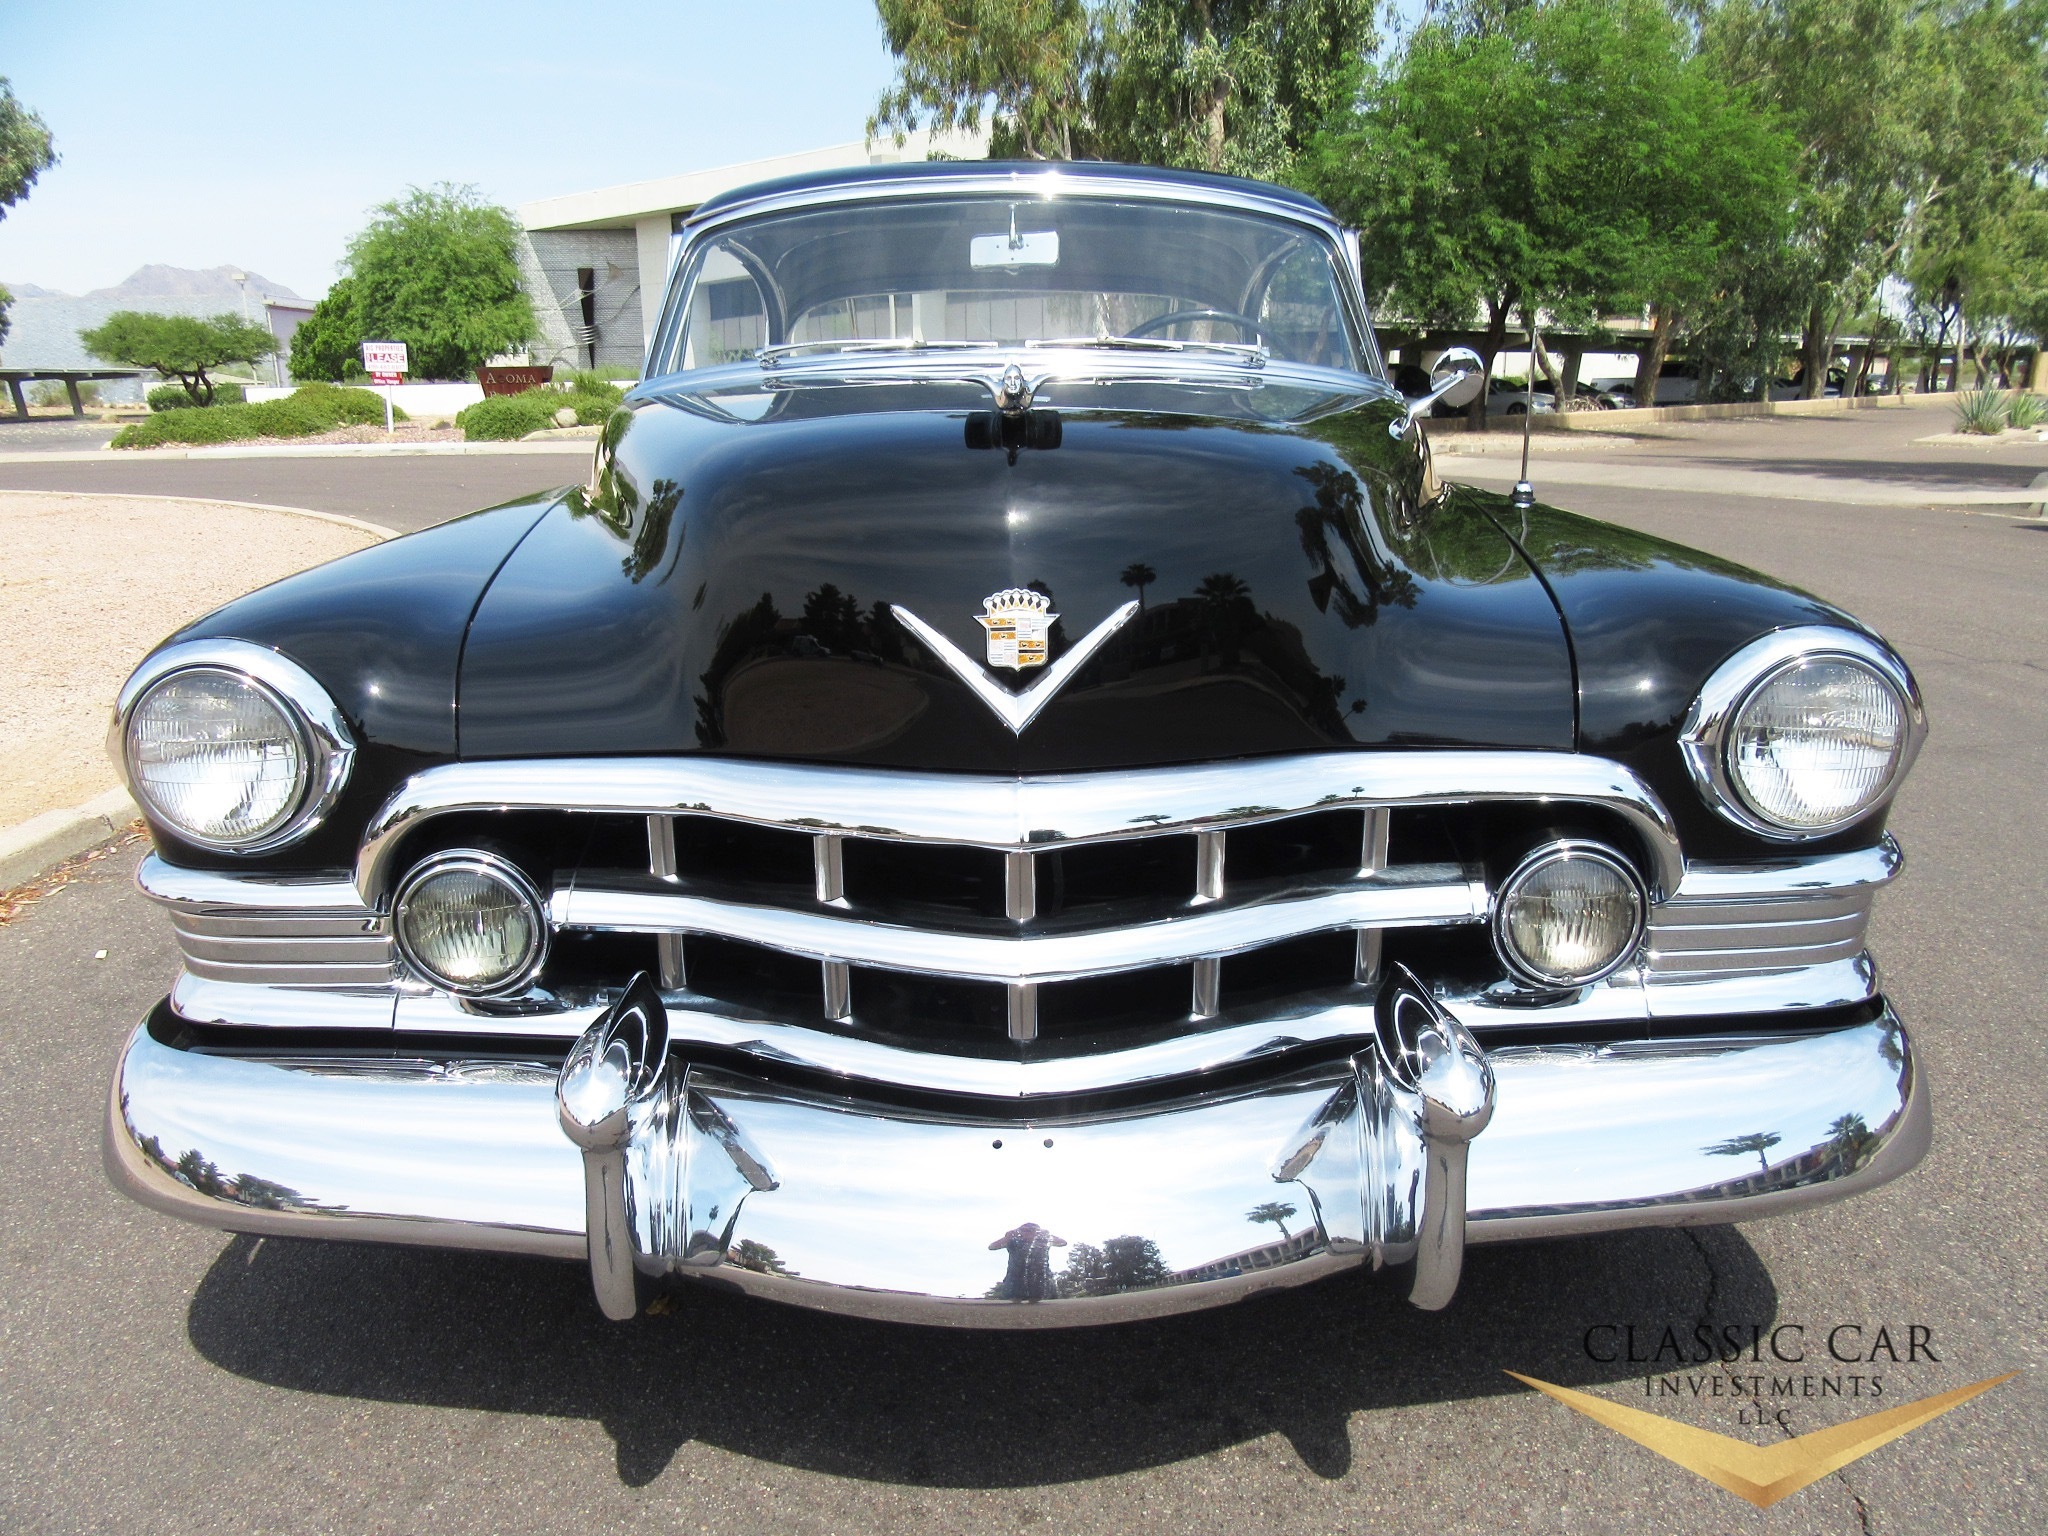 1950 Cadillac Coupe DeVille | Classic Car Investments, LLC